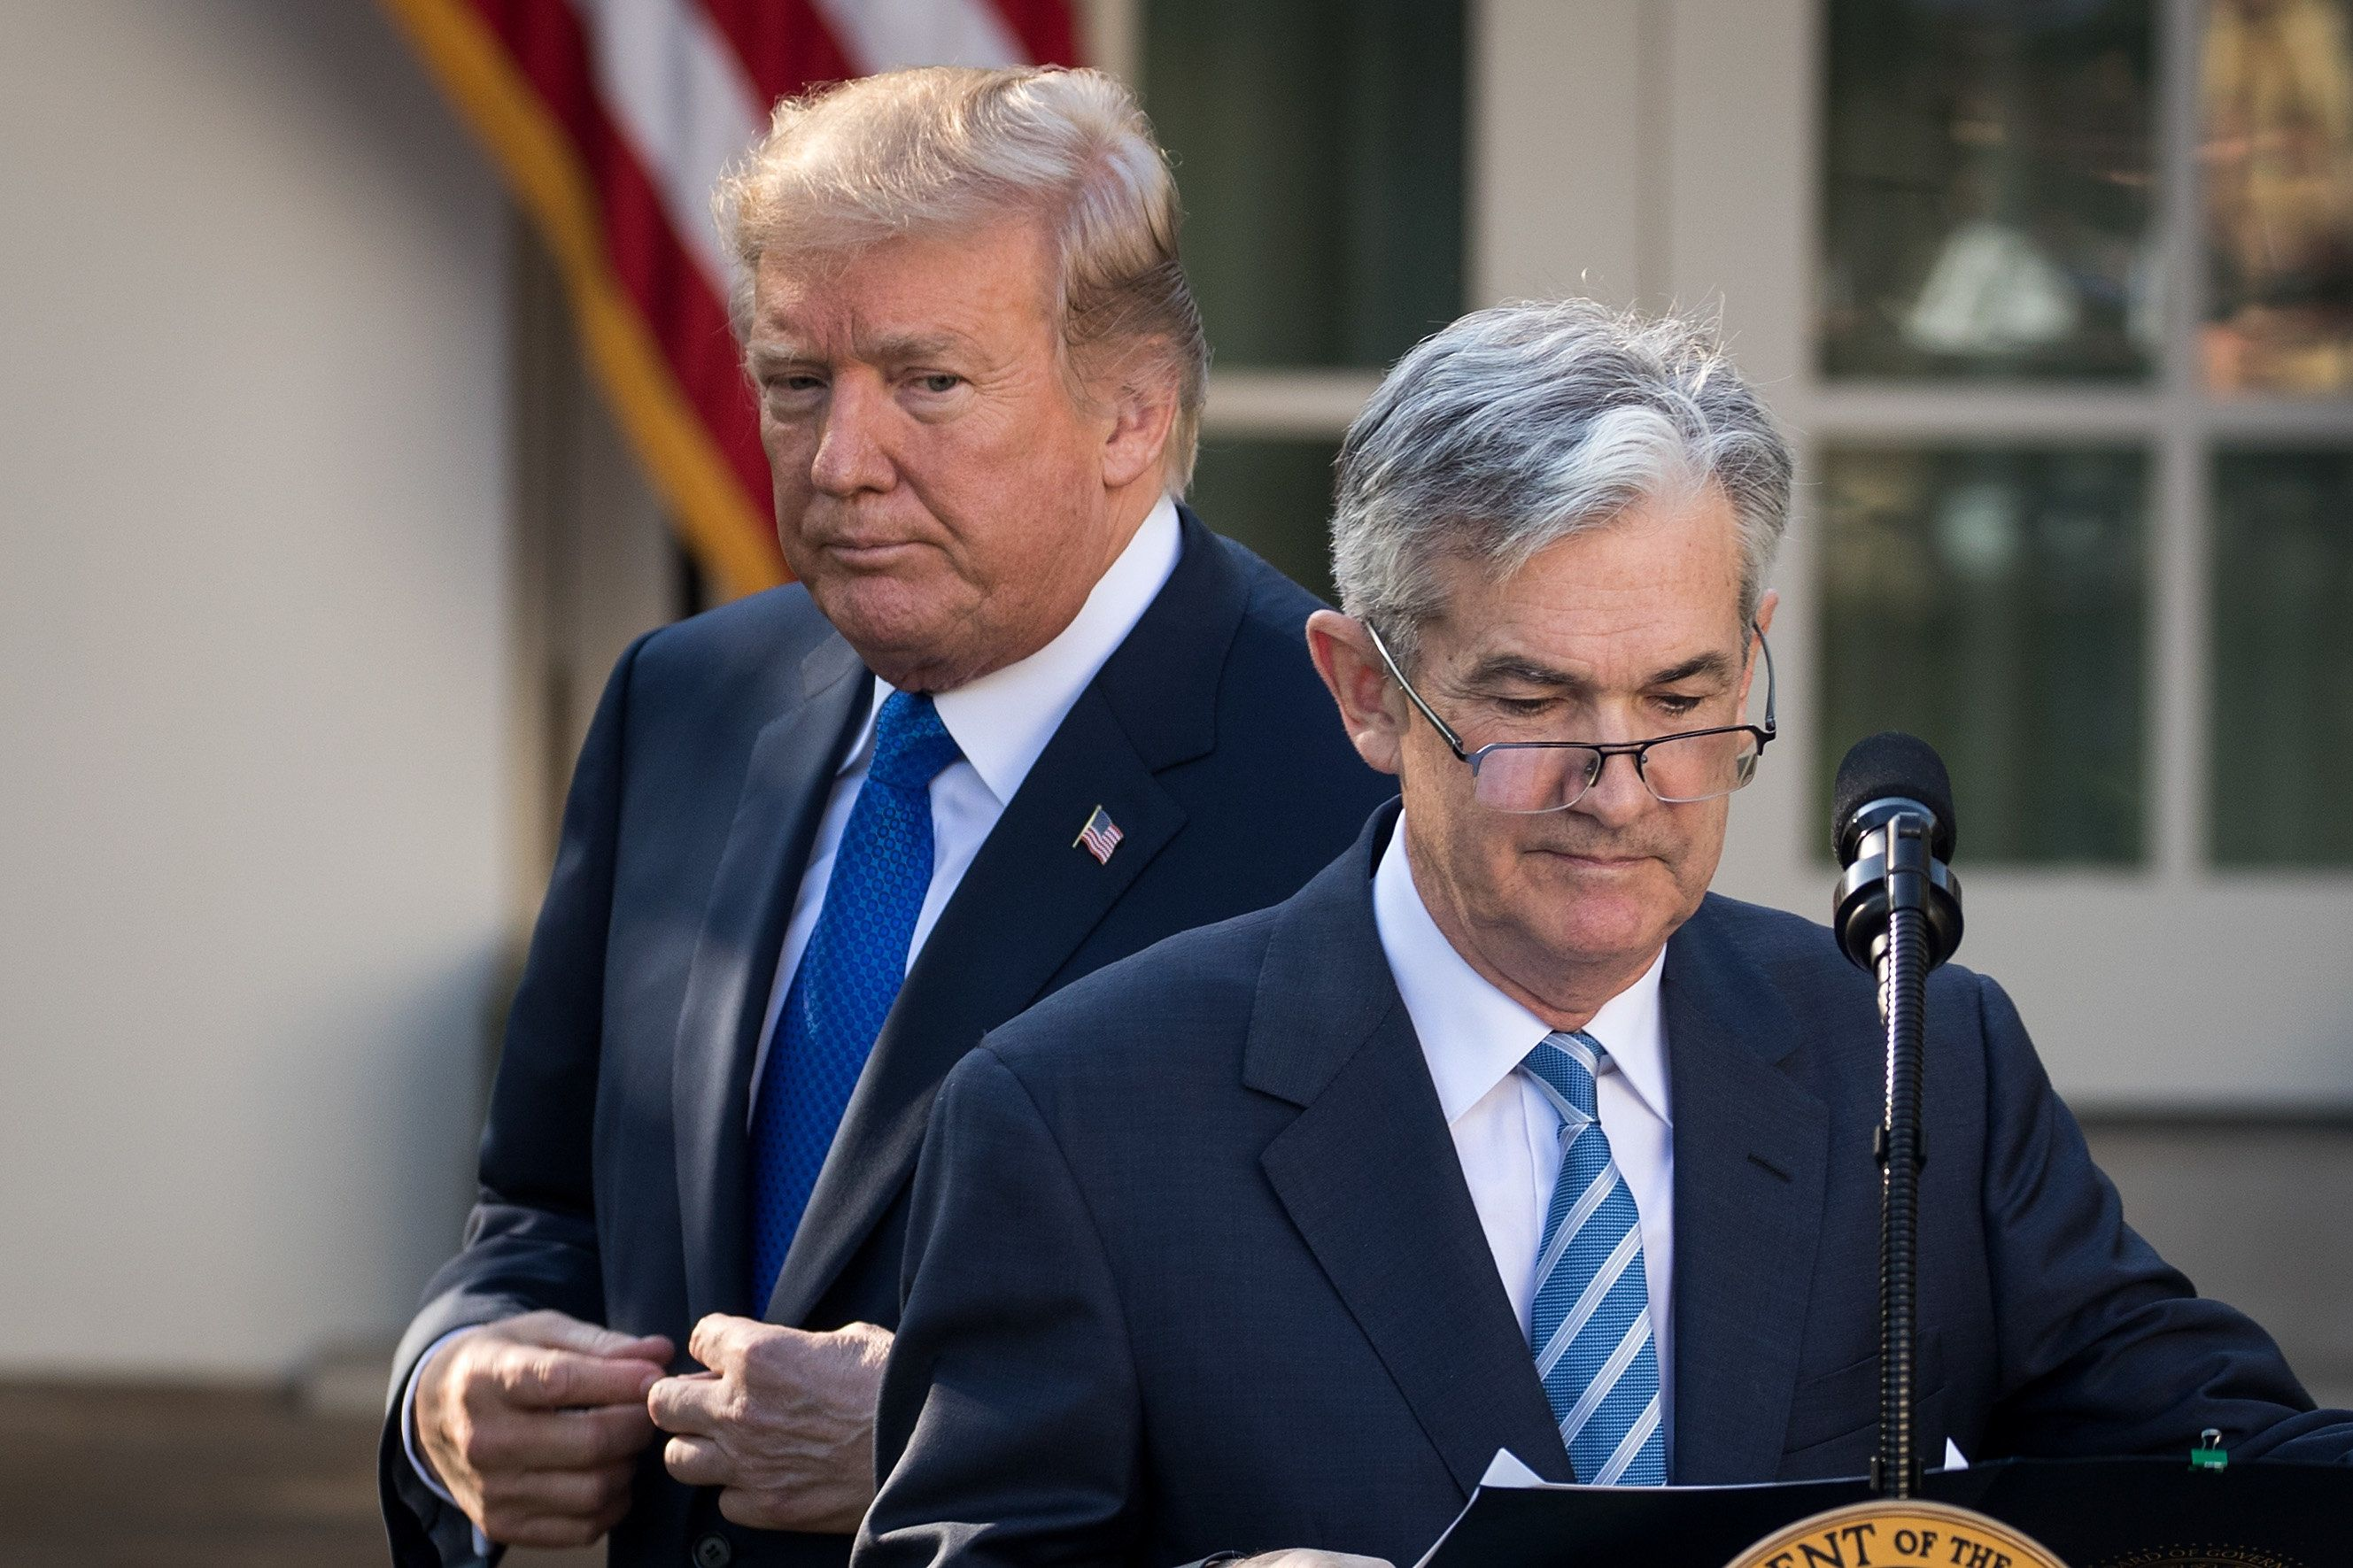 President Donald Trump looks on as his nominee for the chairman of the Federal Reserve Jerome Powell takes to the podium in t